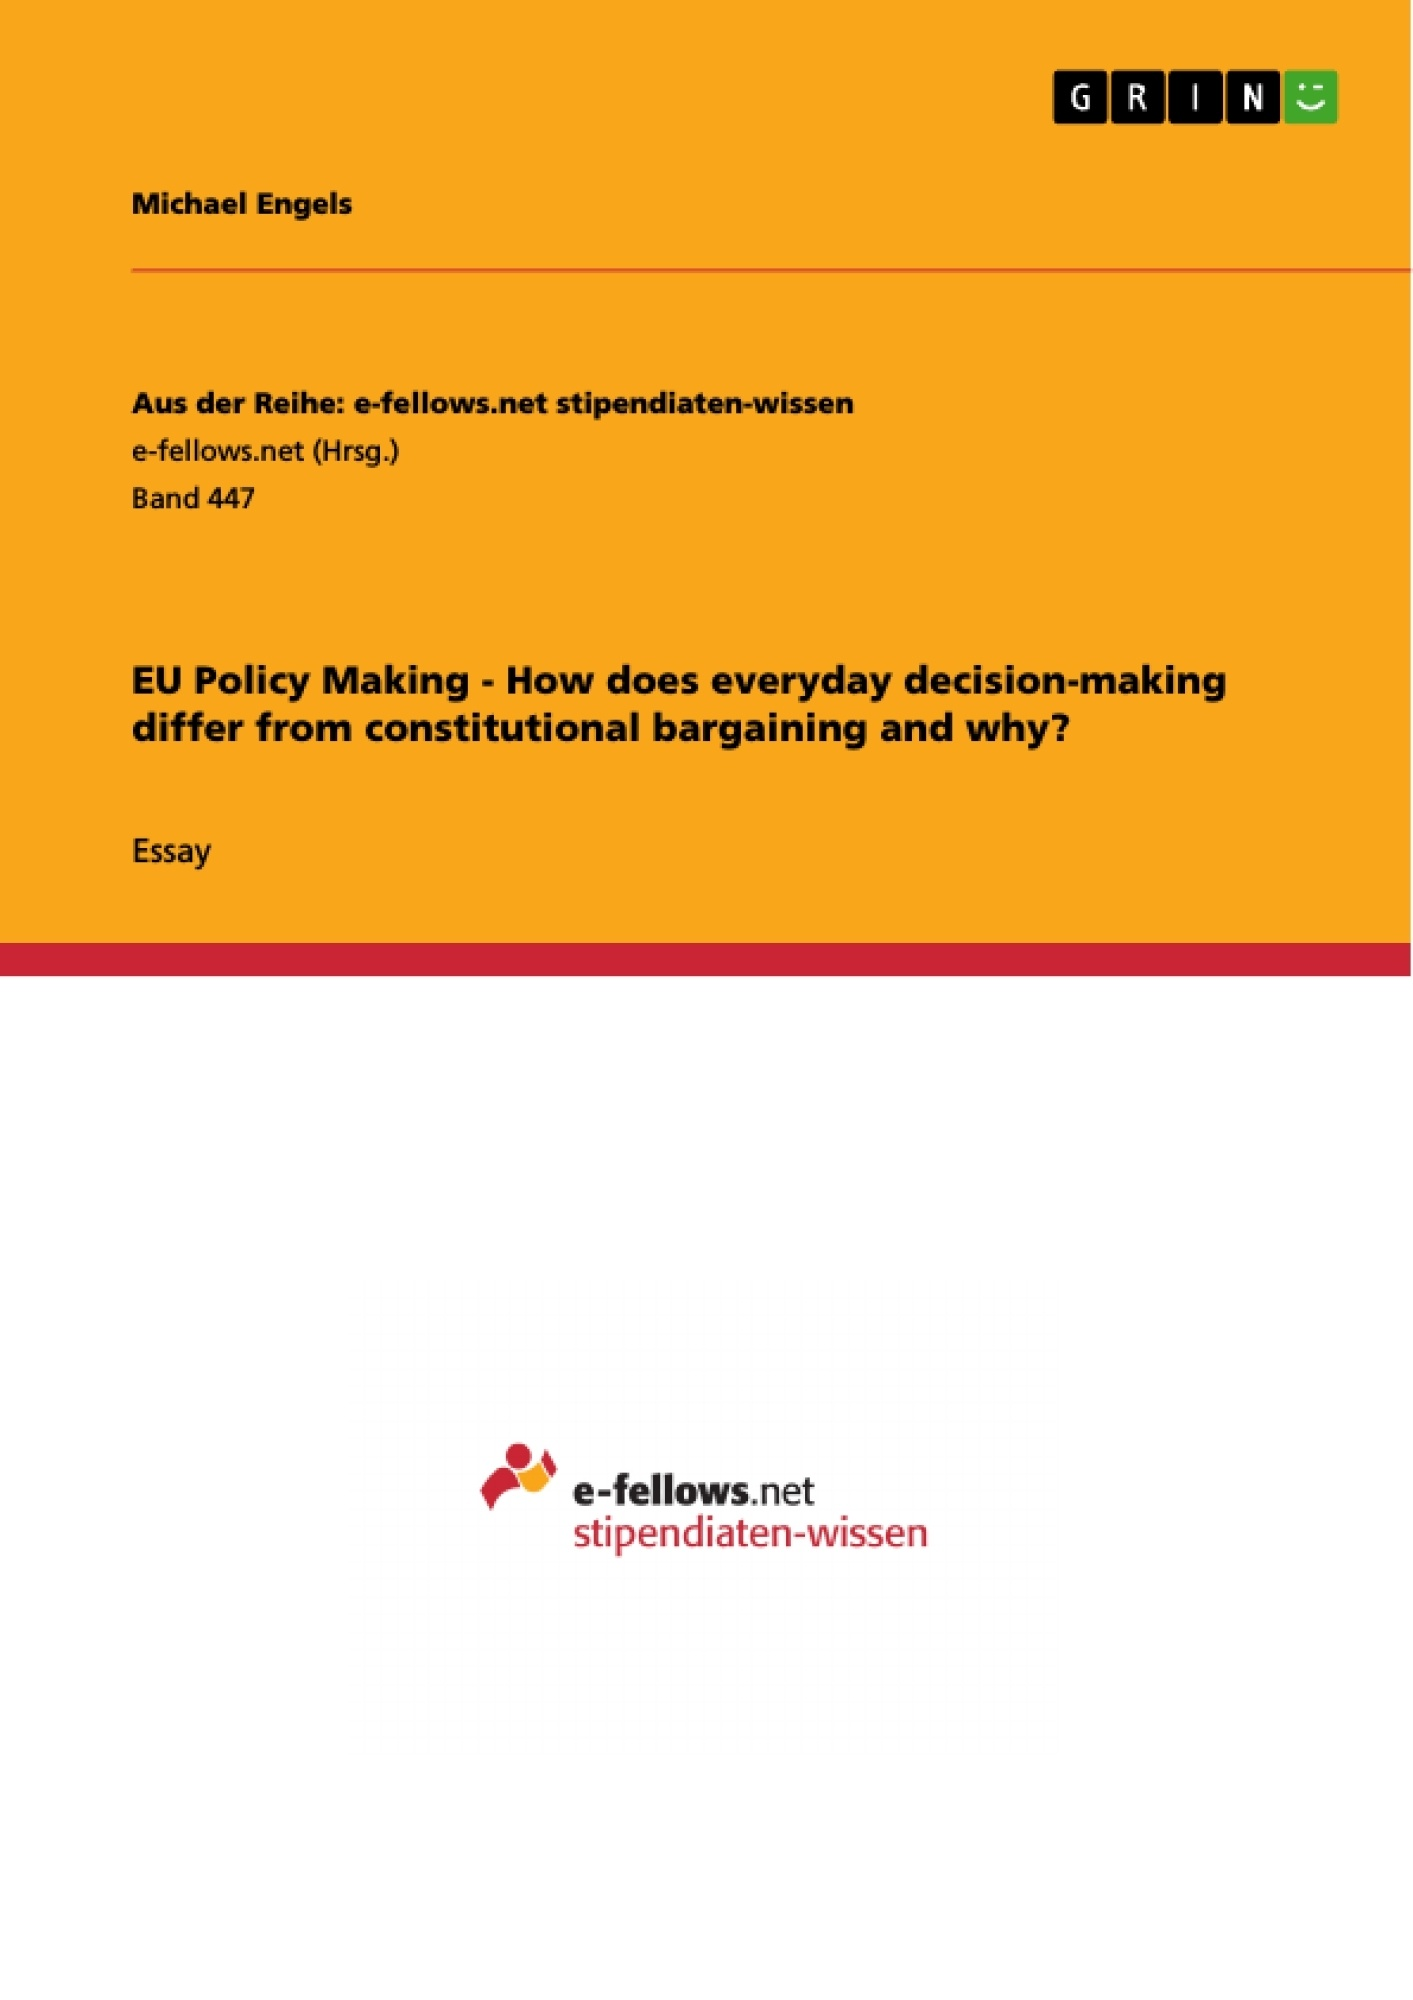 Title: EU Policy Making - How does everyday decision-making differ from constitutional bargaining and why?